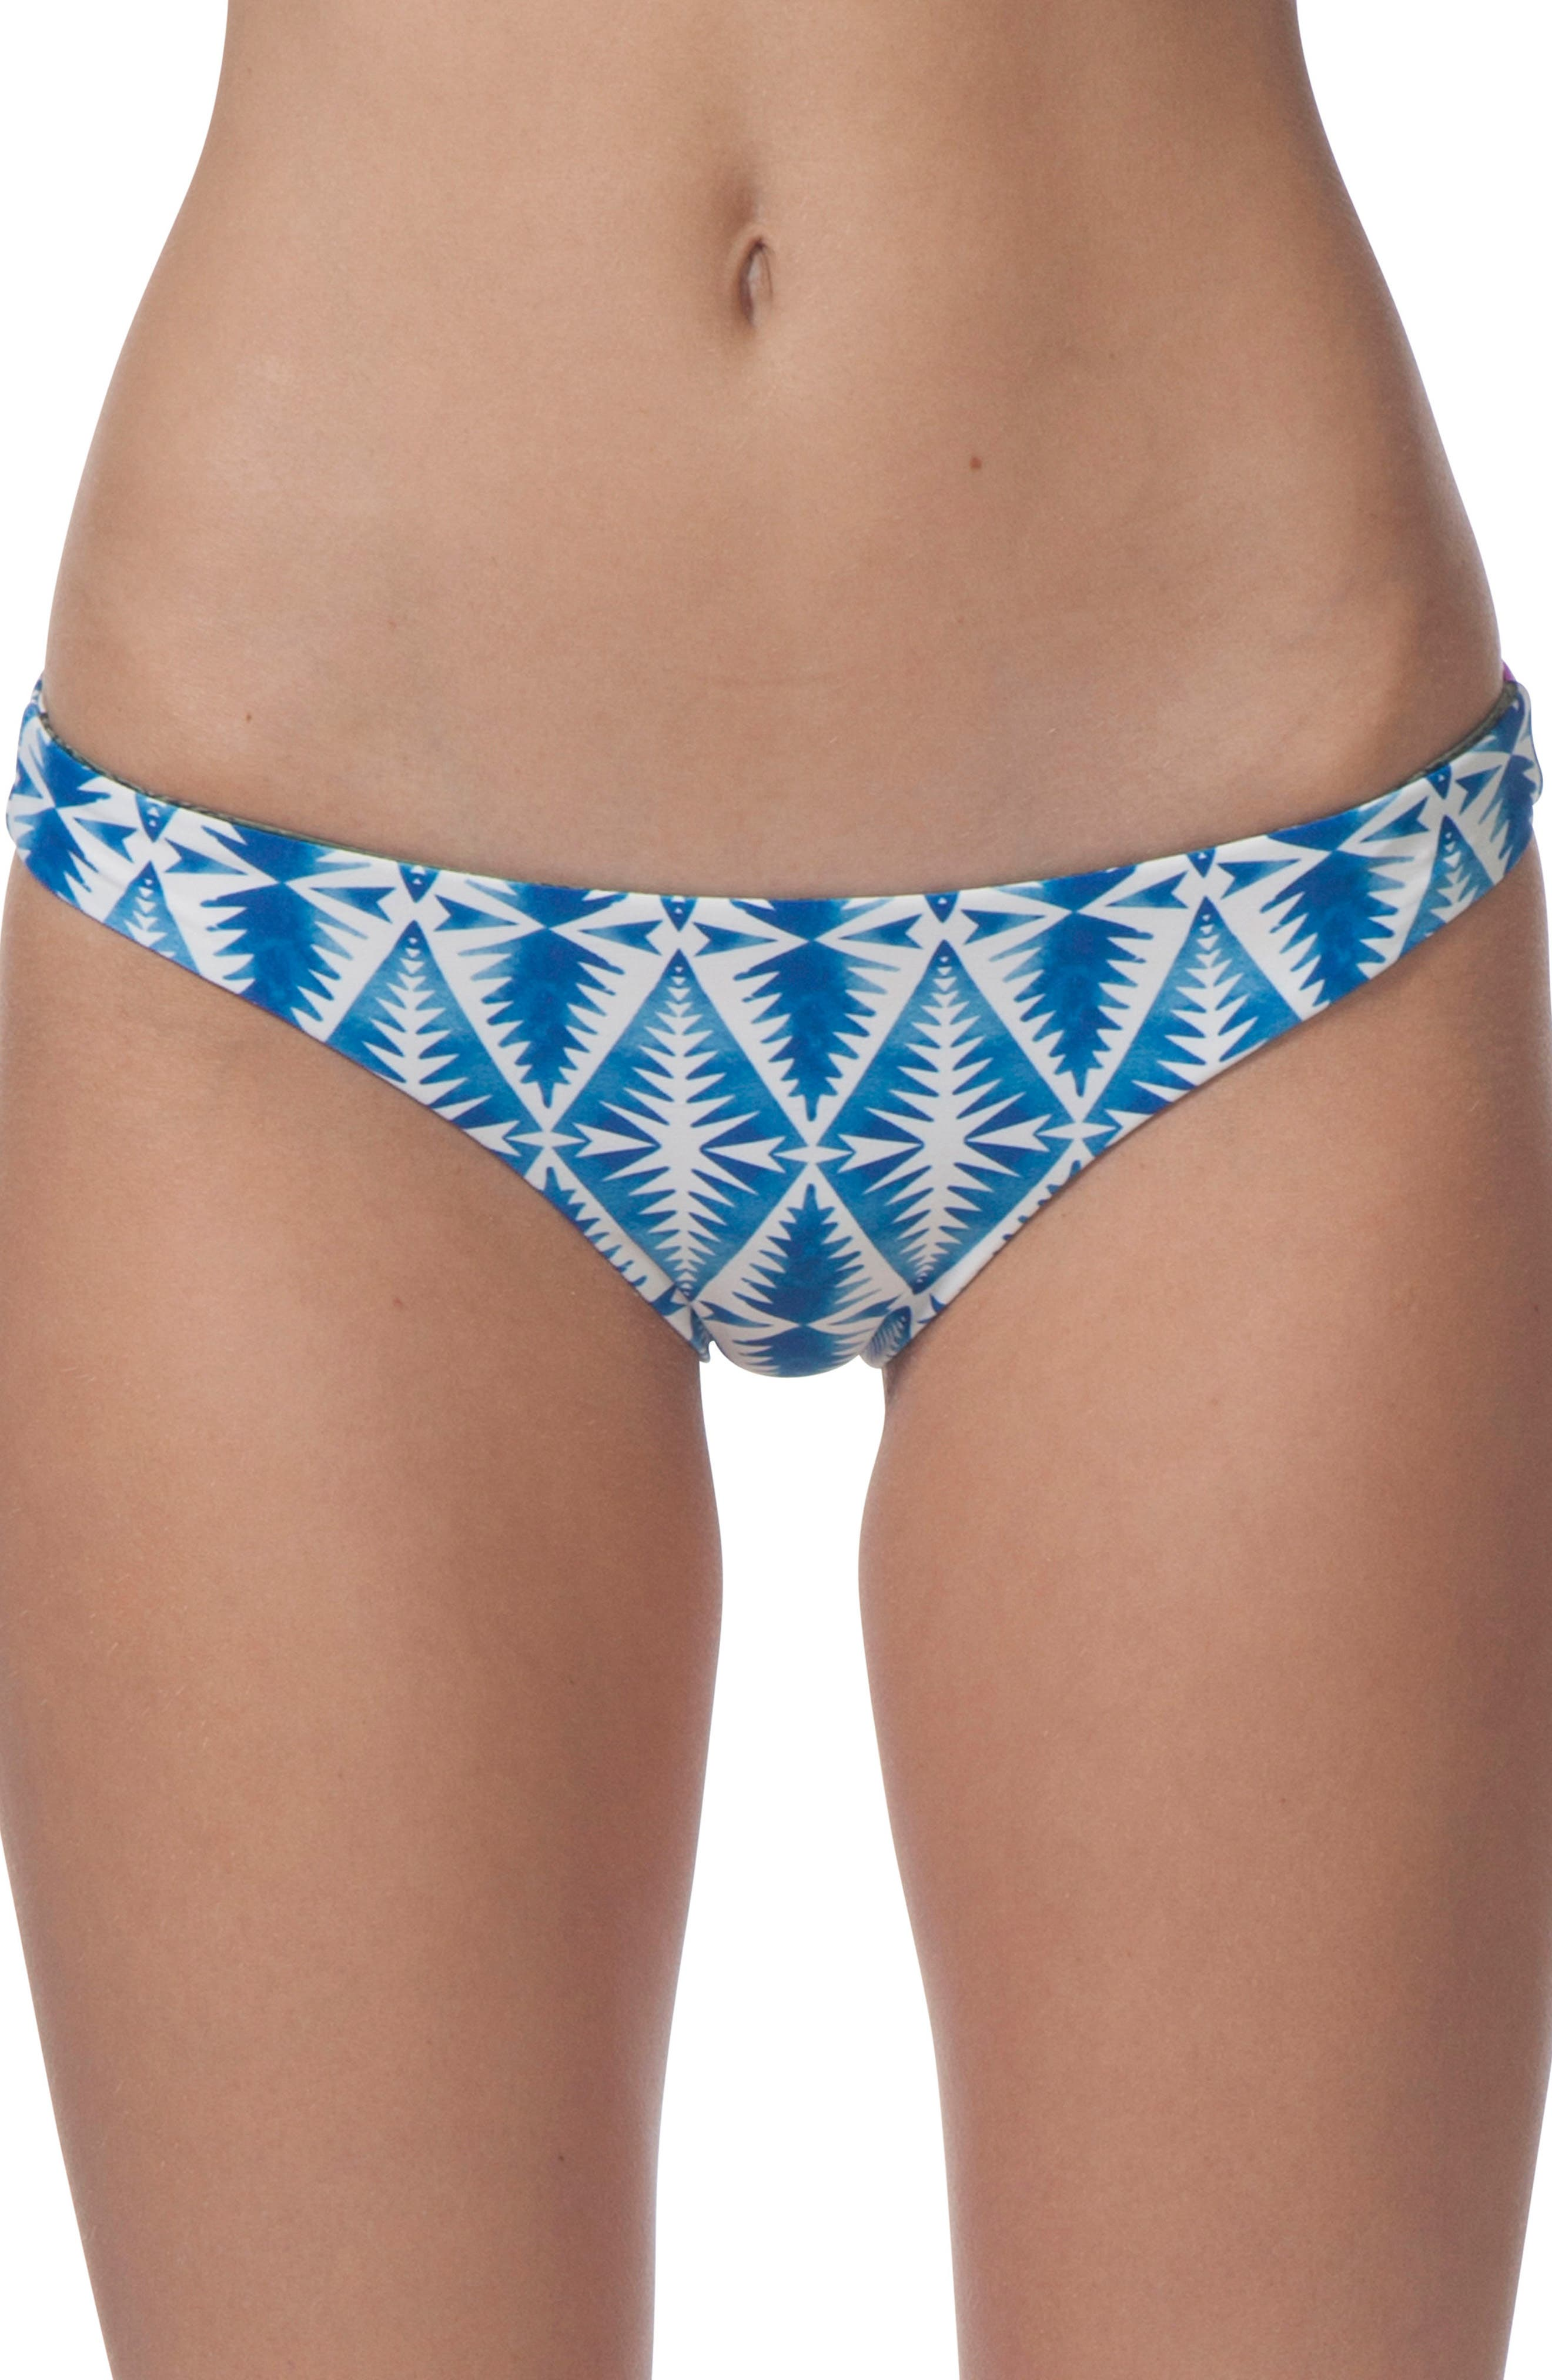 Beach Bazaar Reversible Hipster Bikini Bottoms,                         Main,                         color, Blue